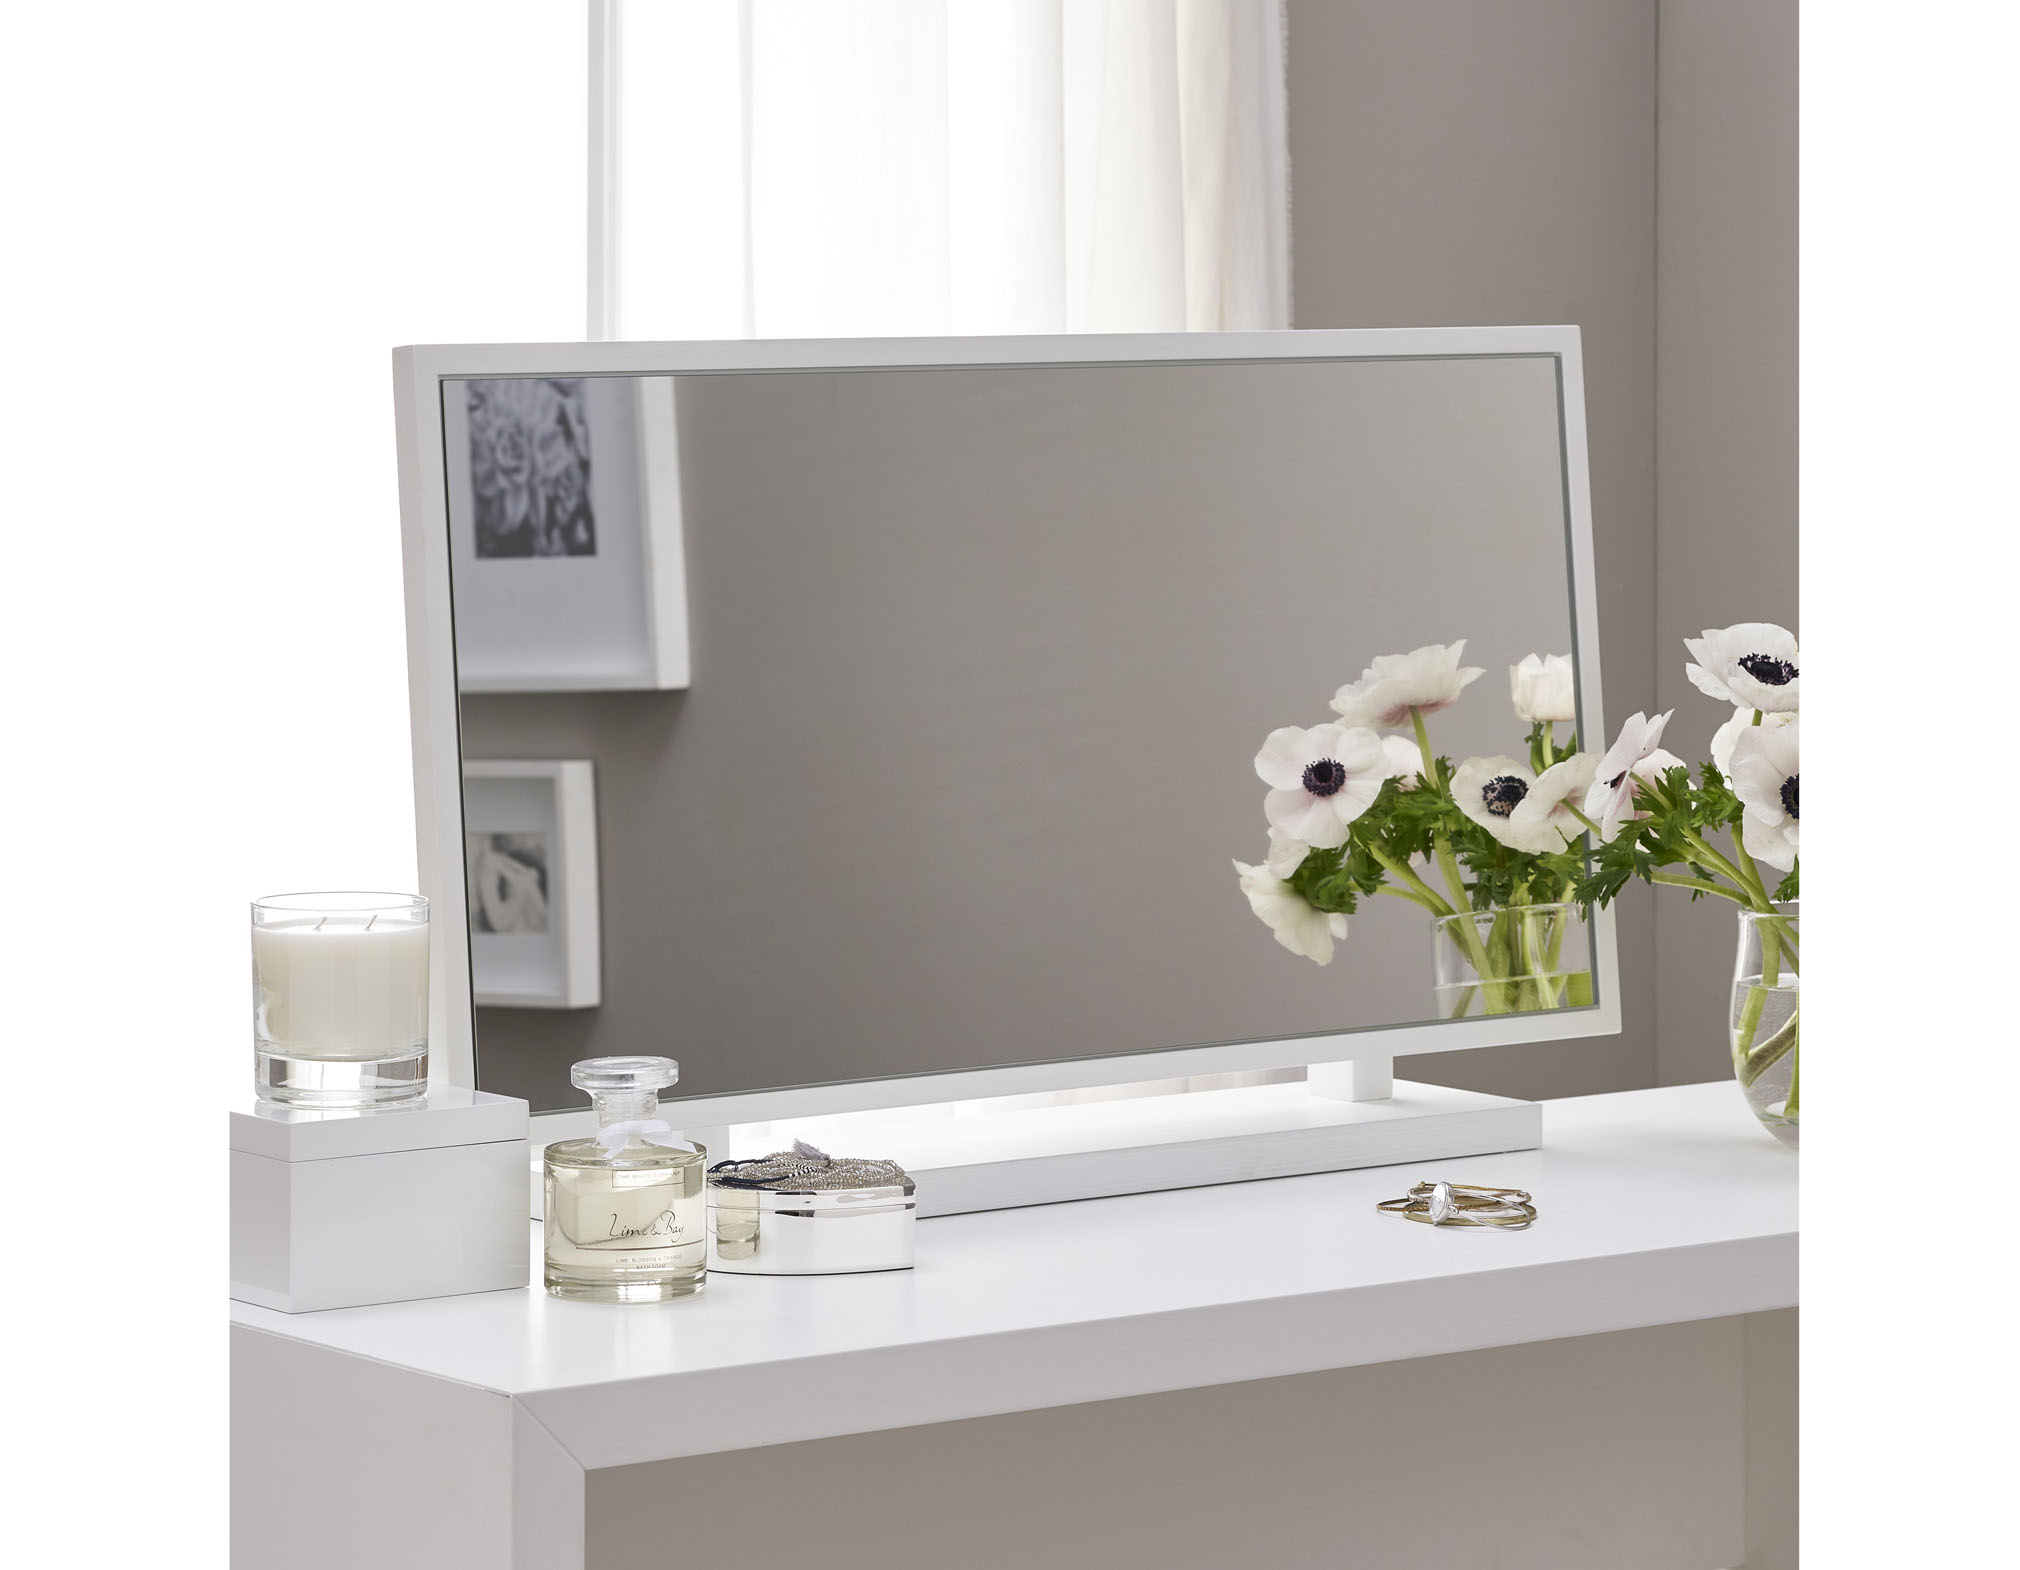 Pimlico Dressing Table Mirror, £195, The White Company